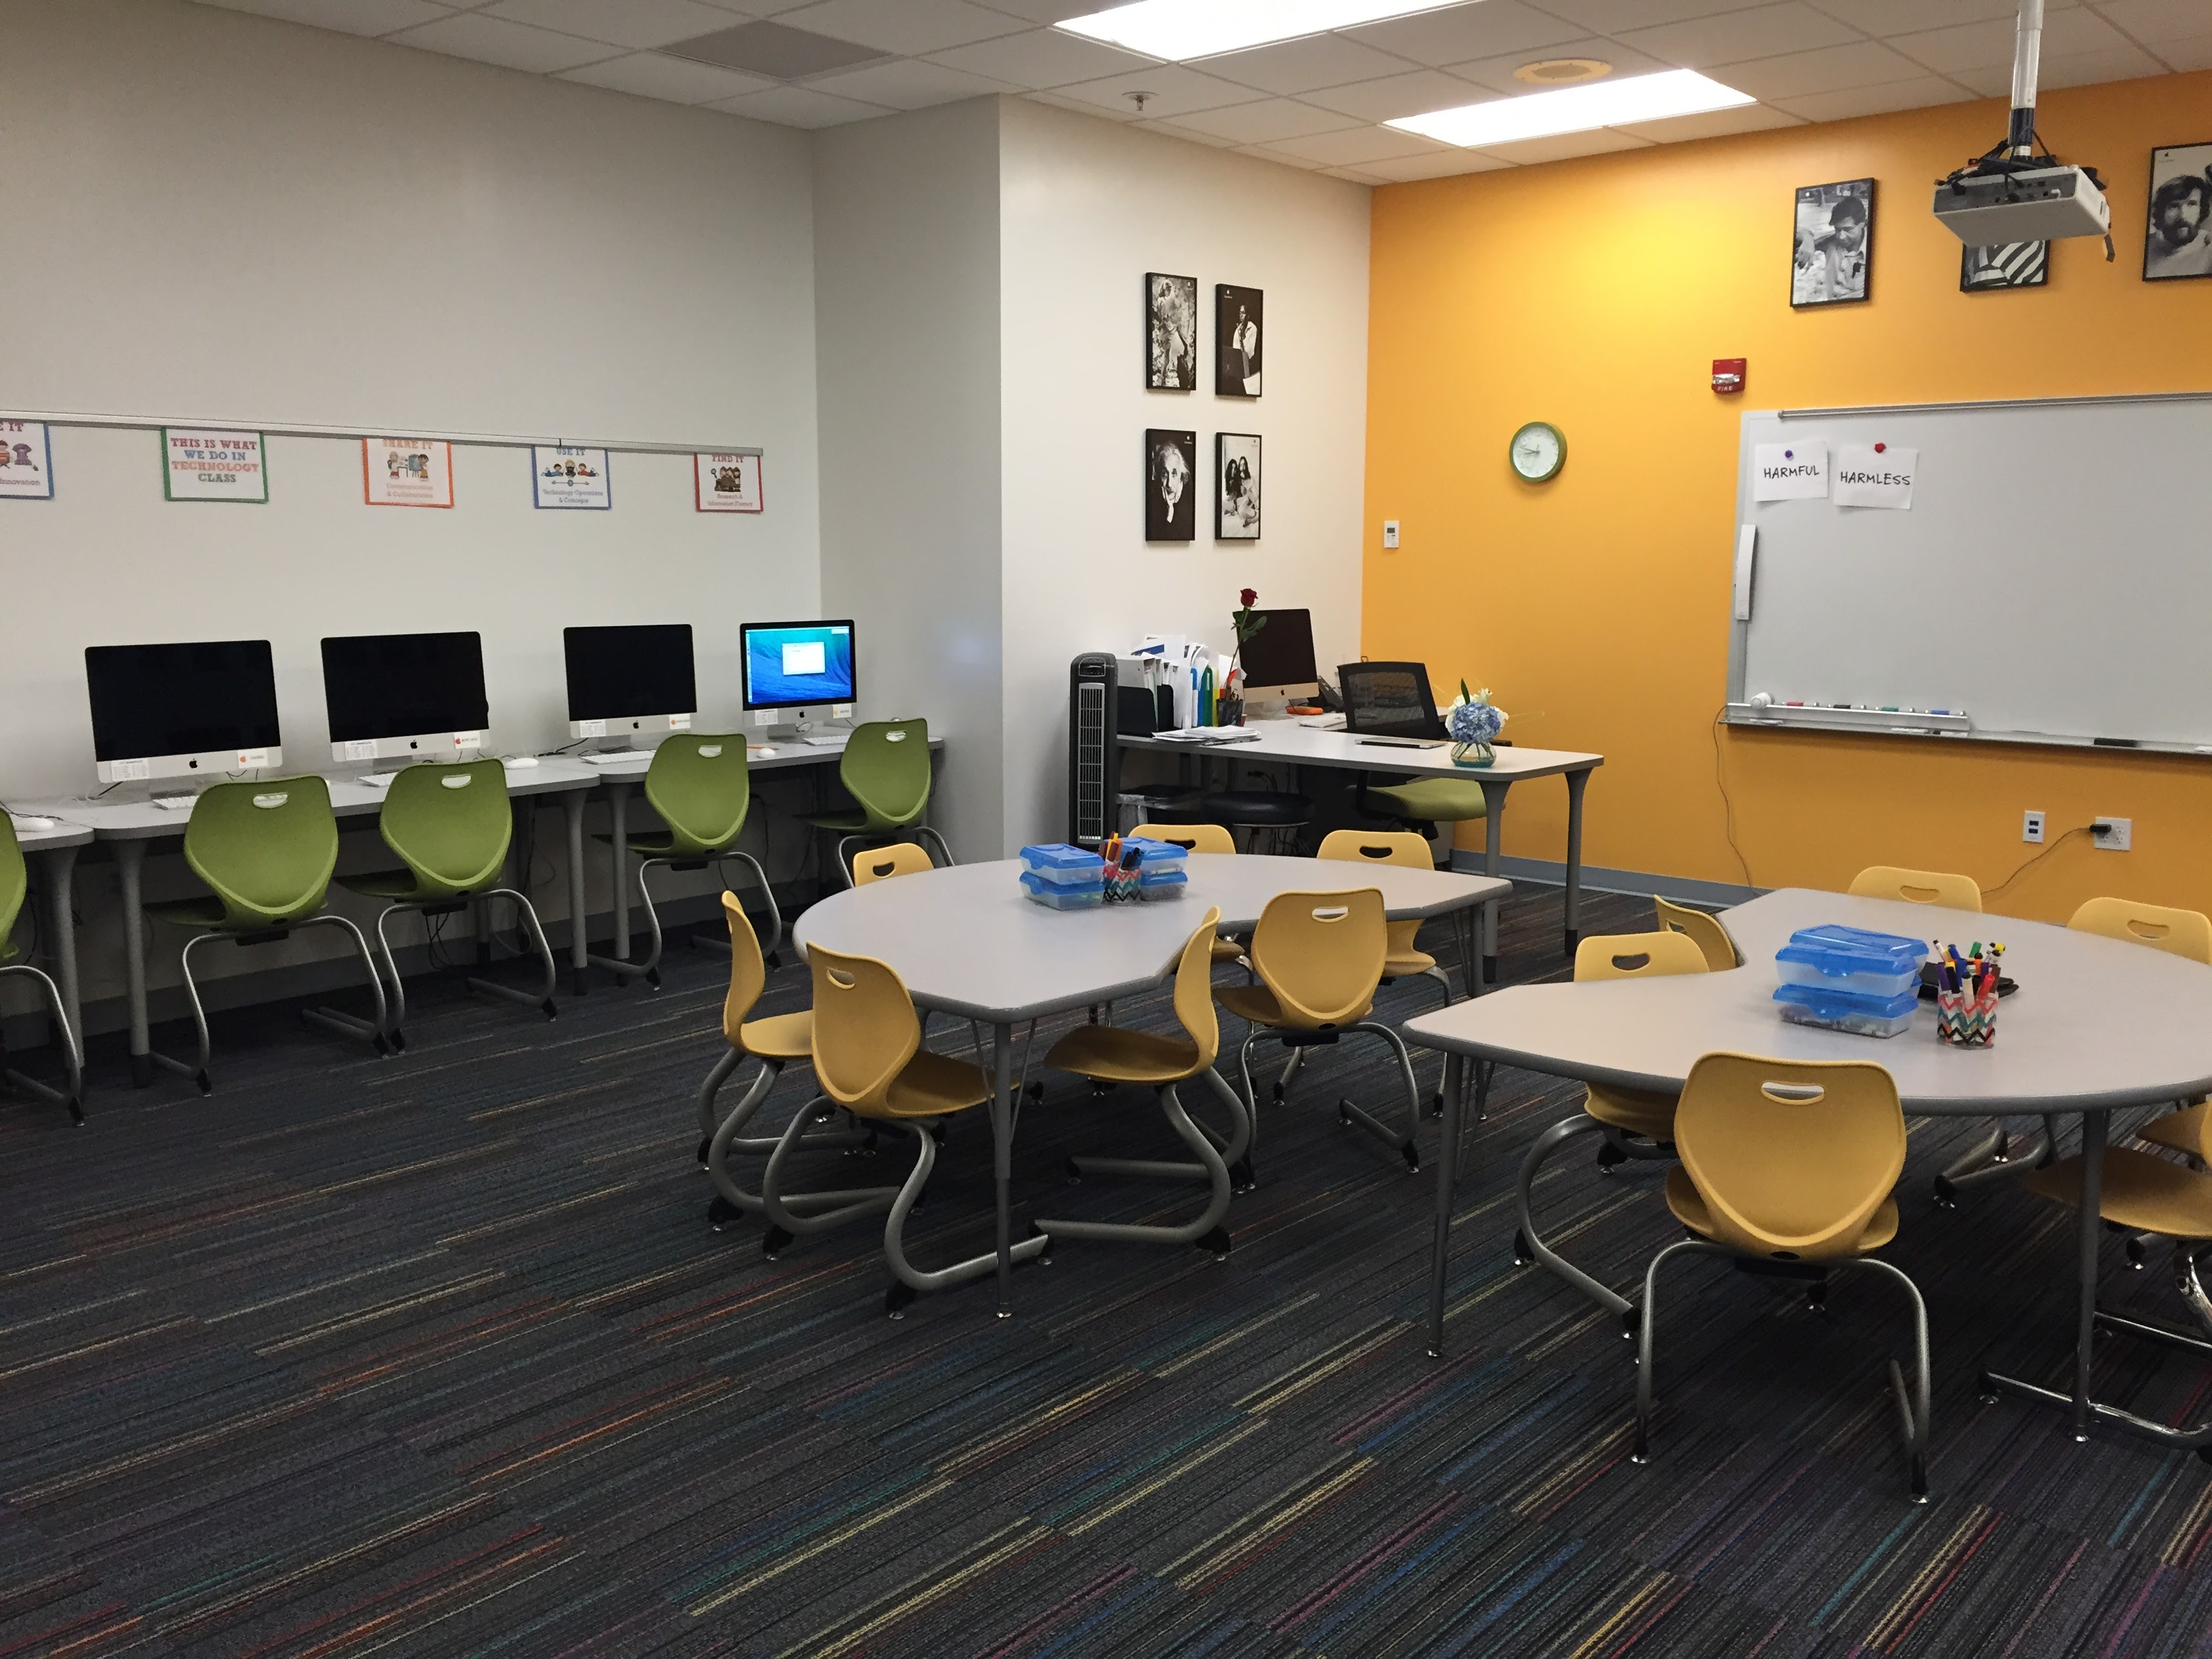 Innovative Classroom Displays ~ Ways to upgrade your classroom design cult of pedagogy